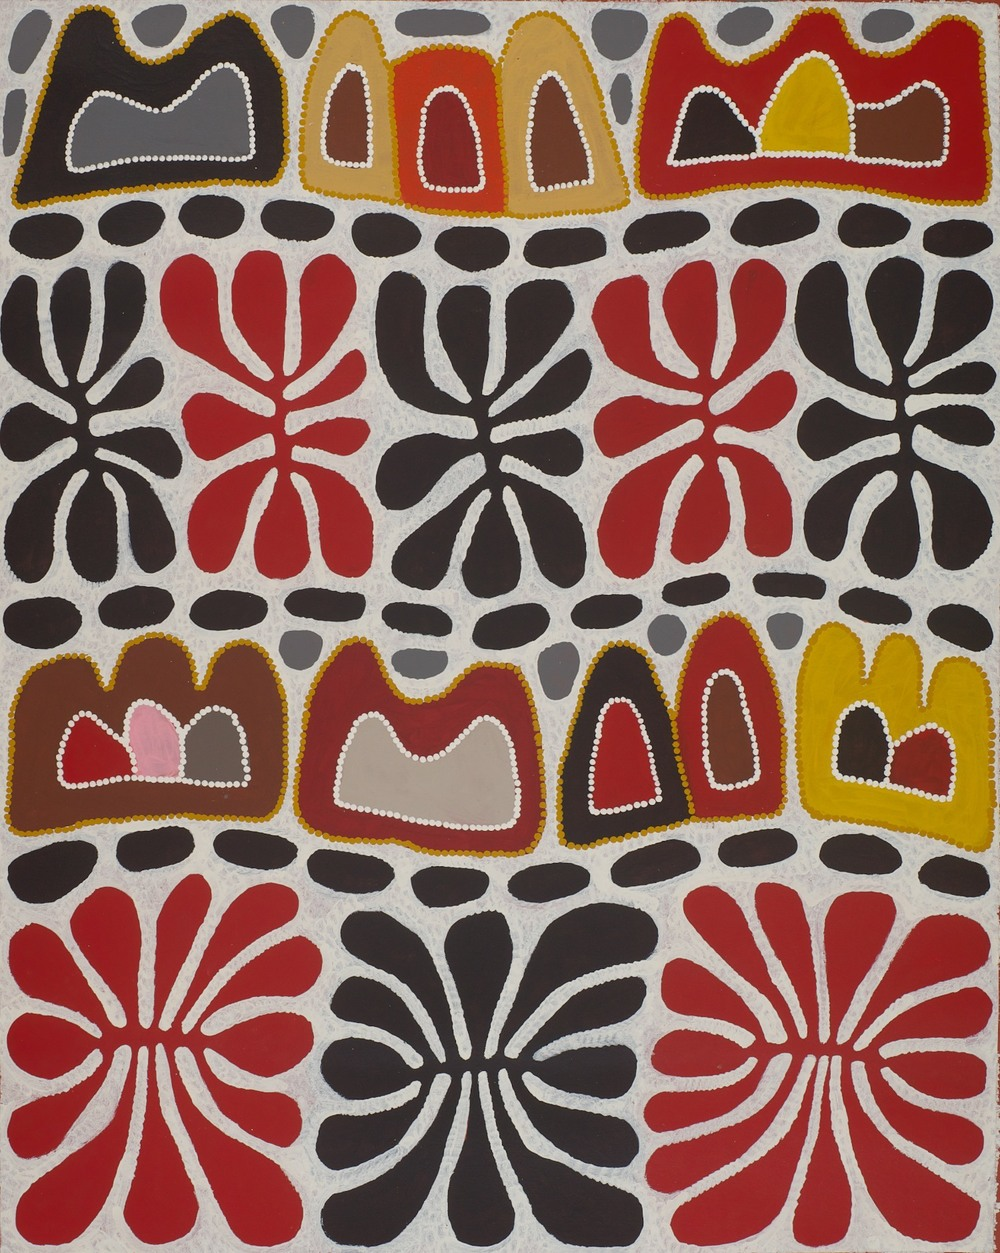 #13947 Mitjili Napurrula 'Watiya Tjuta Irantji - Dreaming with Clouds' 93cm x 117cm Was $2800 Now $2240